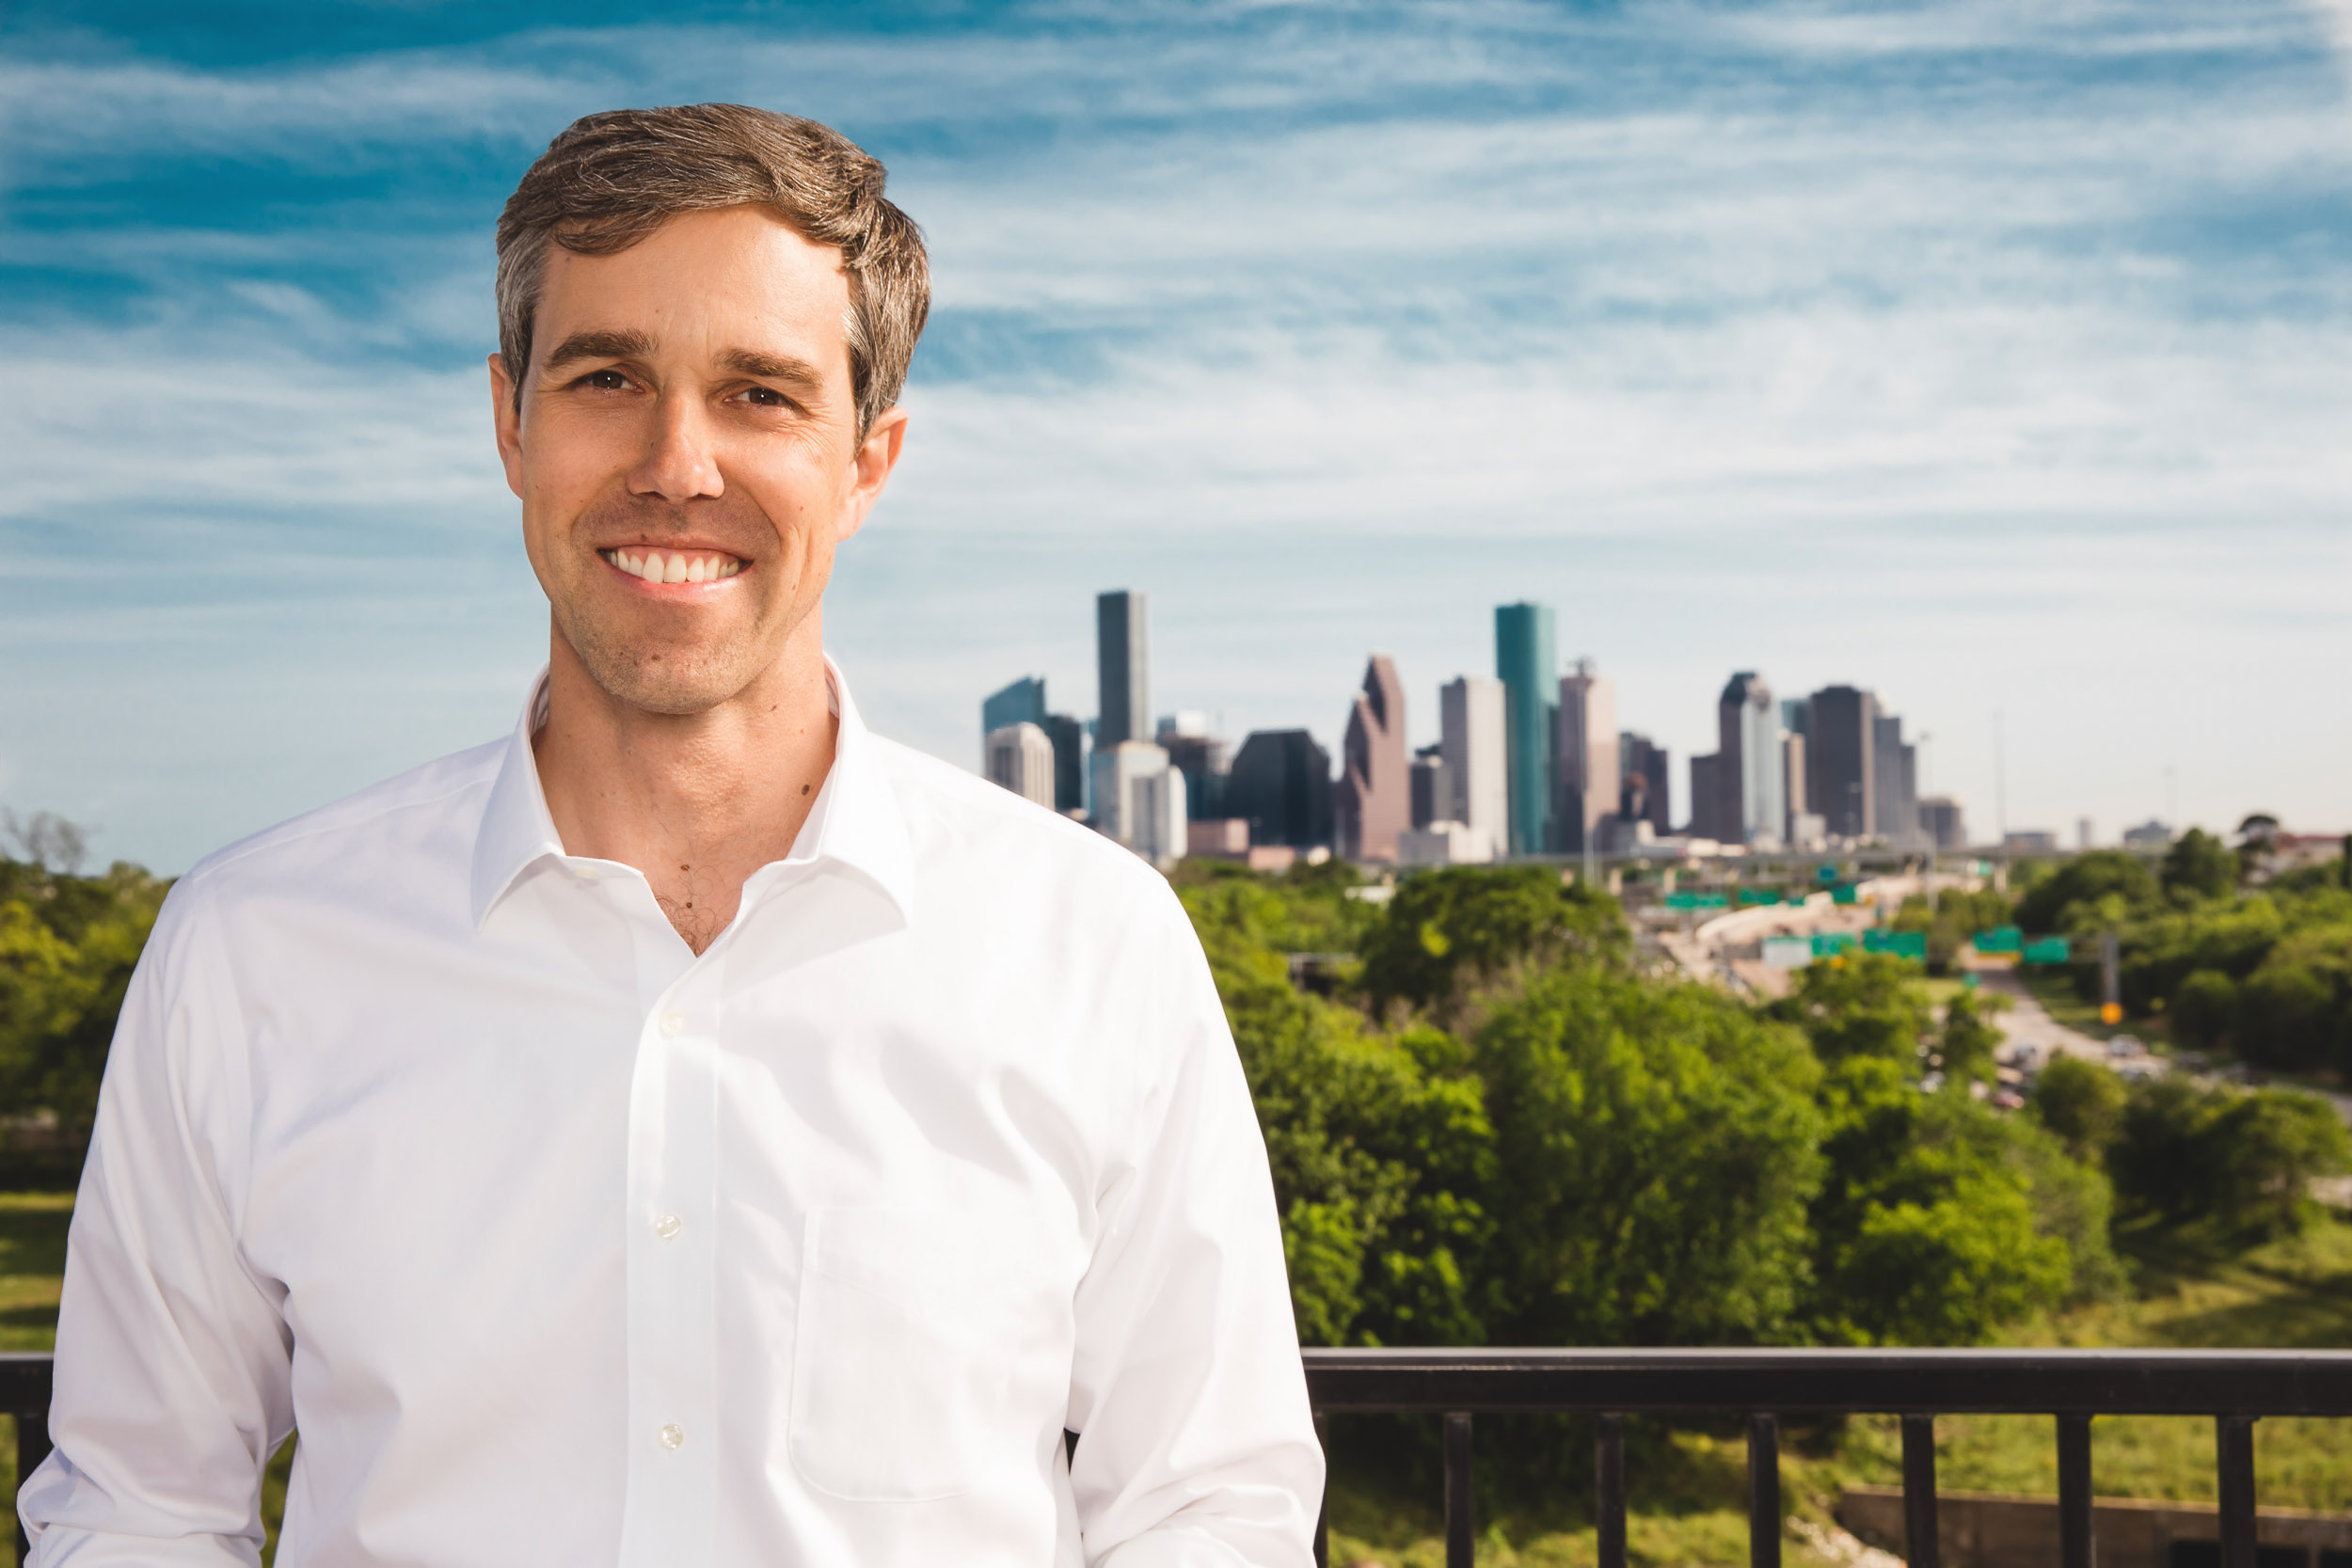 Beto for U.S. Senate!